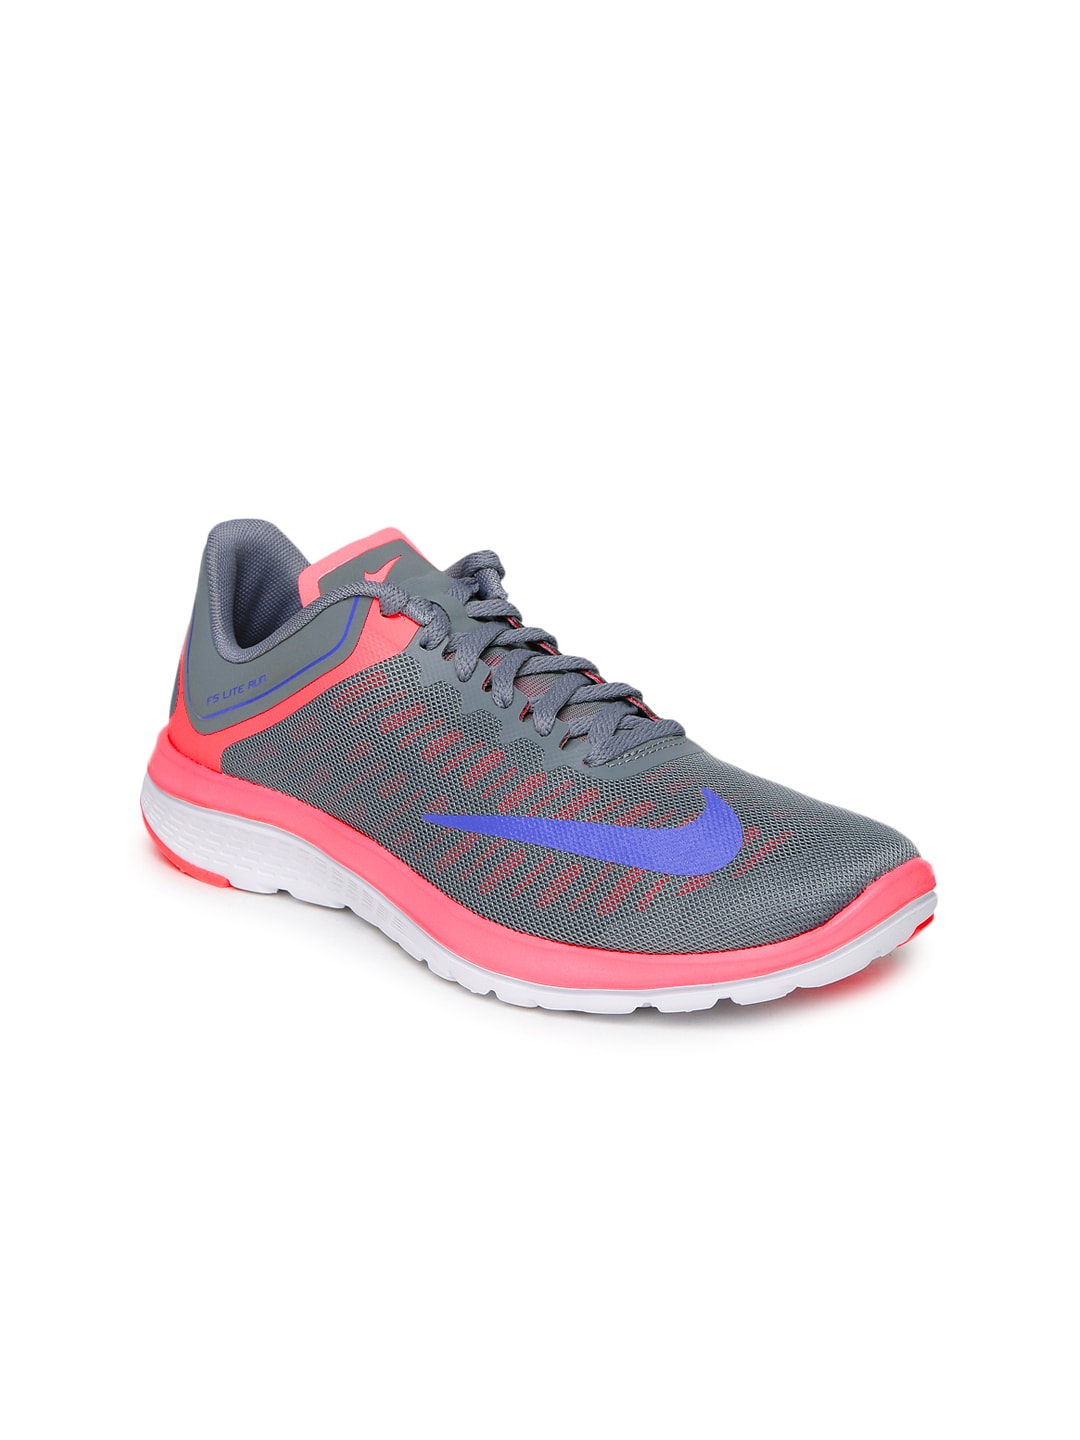 Cheap Nike FS Lite Run 2 Lightweight Running Shoe Womens Women's